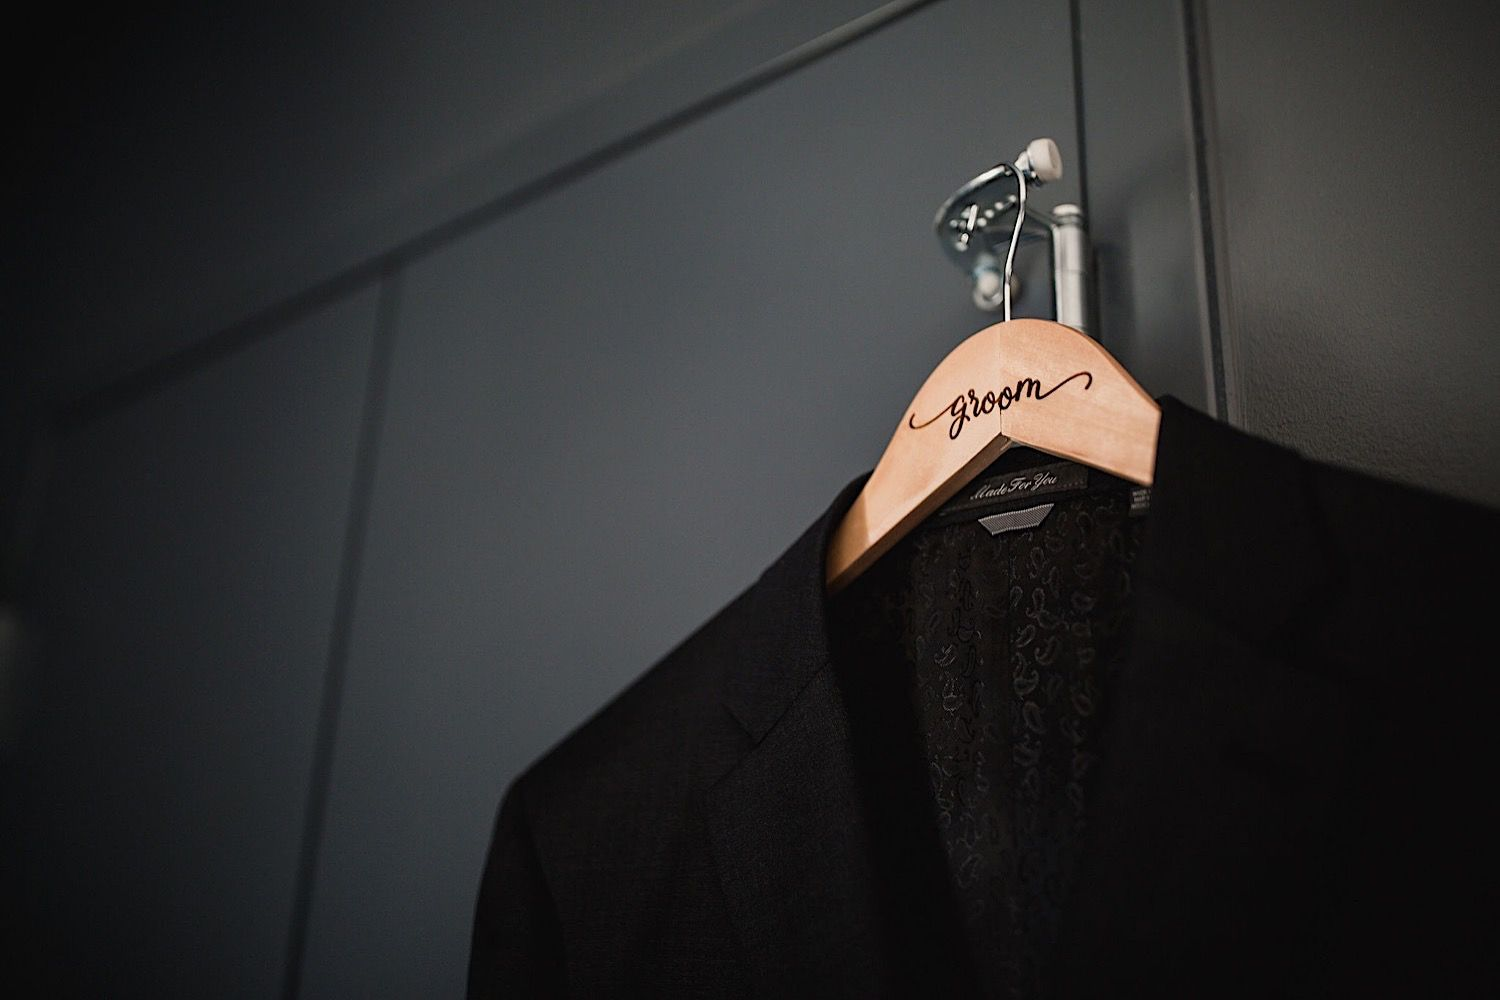 Suit jacket hanging on a hanger that says the groom